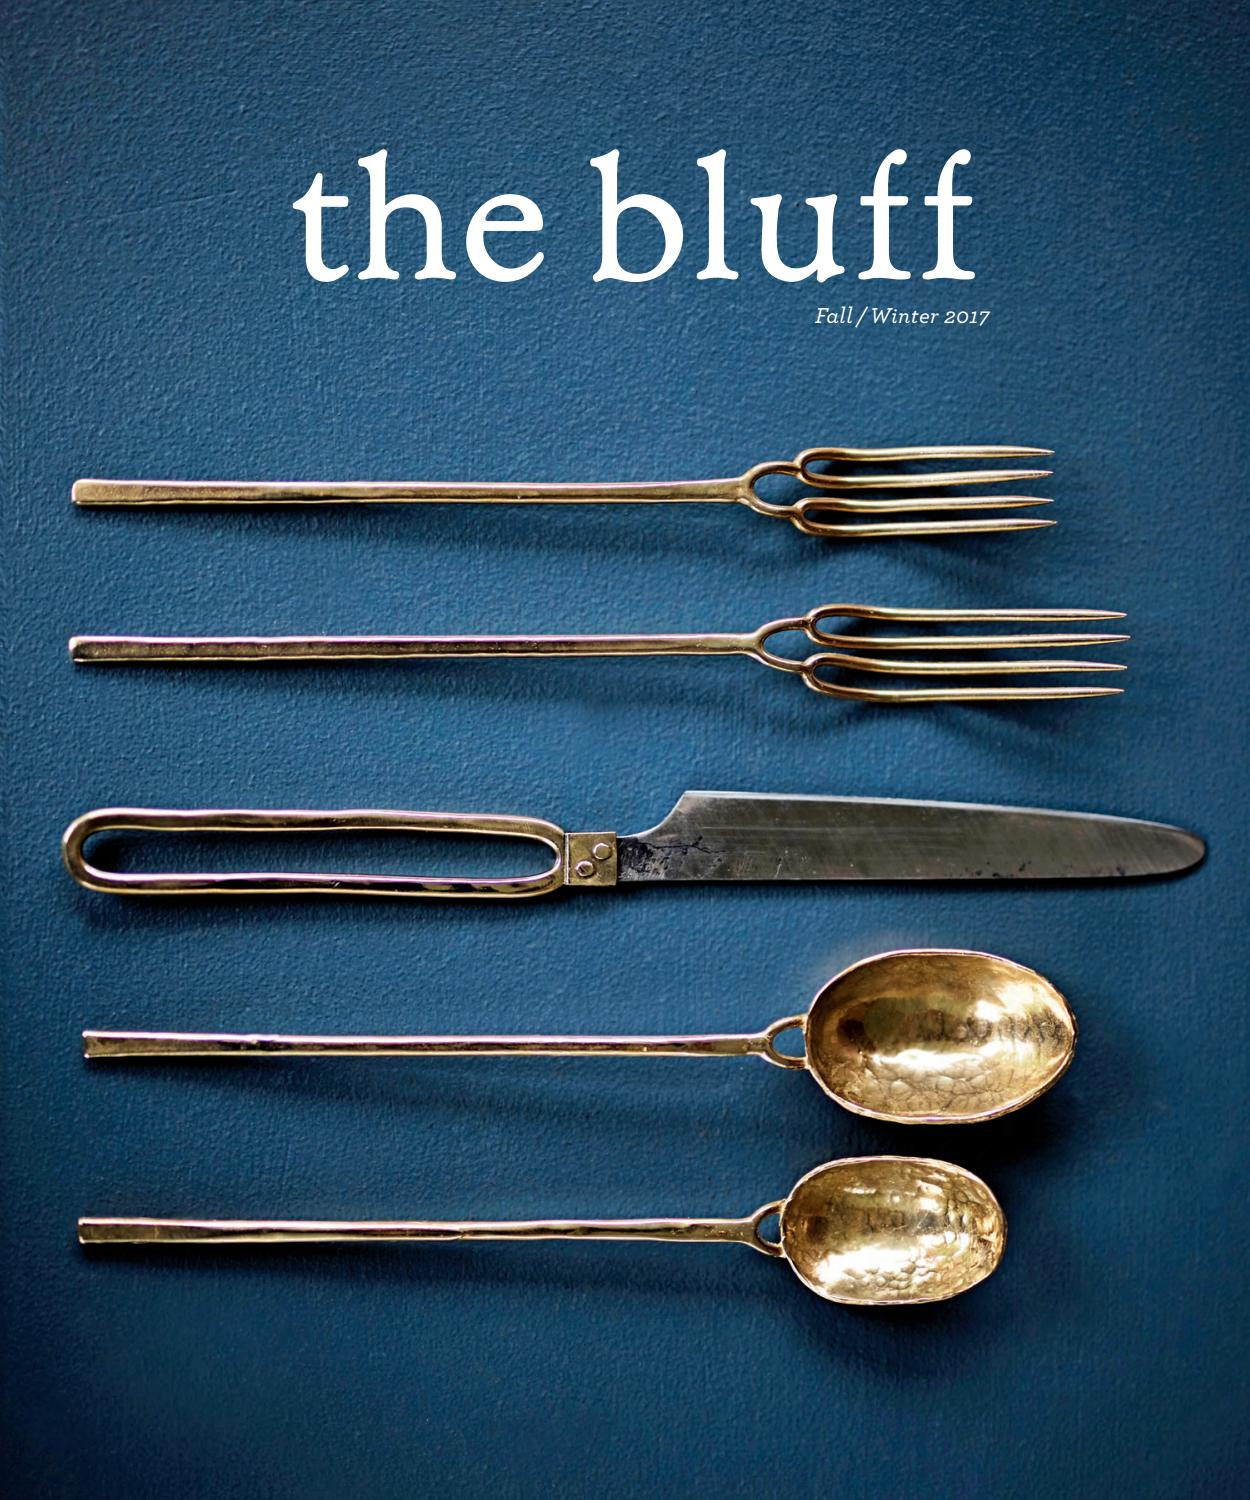 a2bfca9bc The Bluff Magazine Fall Winter 2017 by Palmetto Bluff - issuu